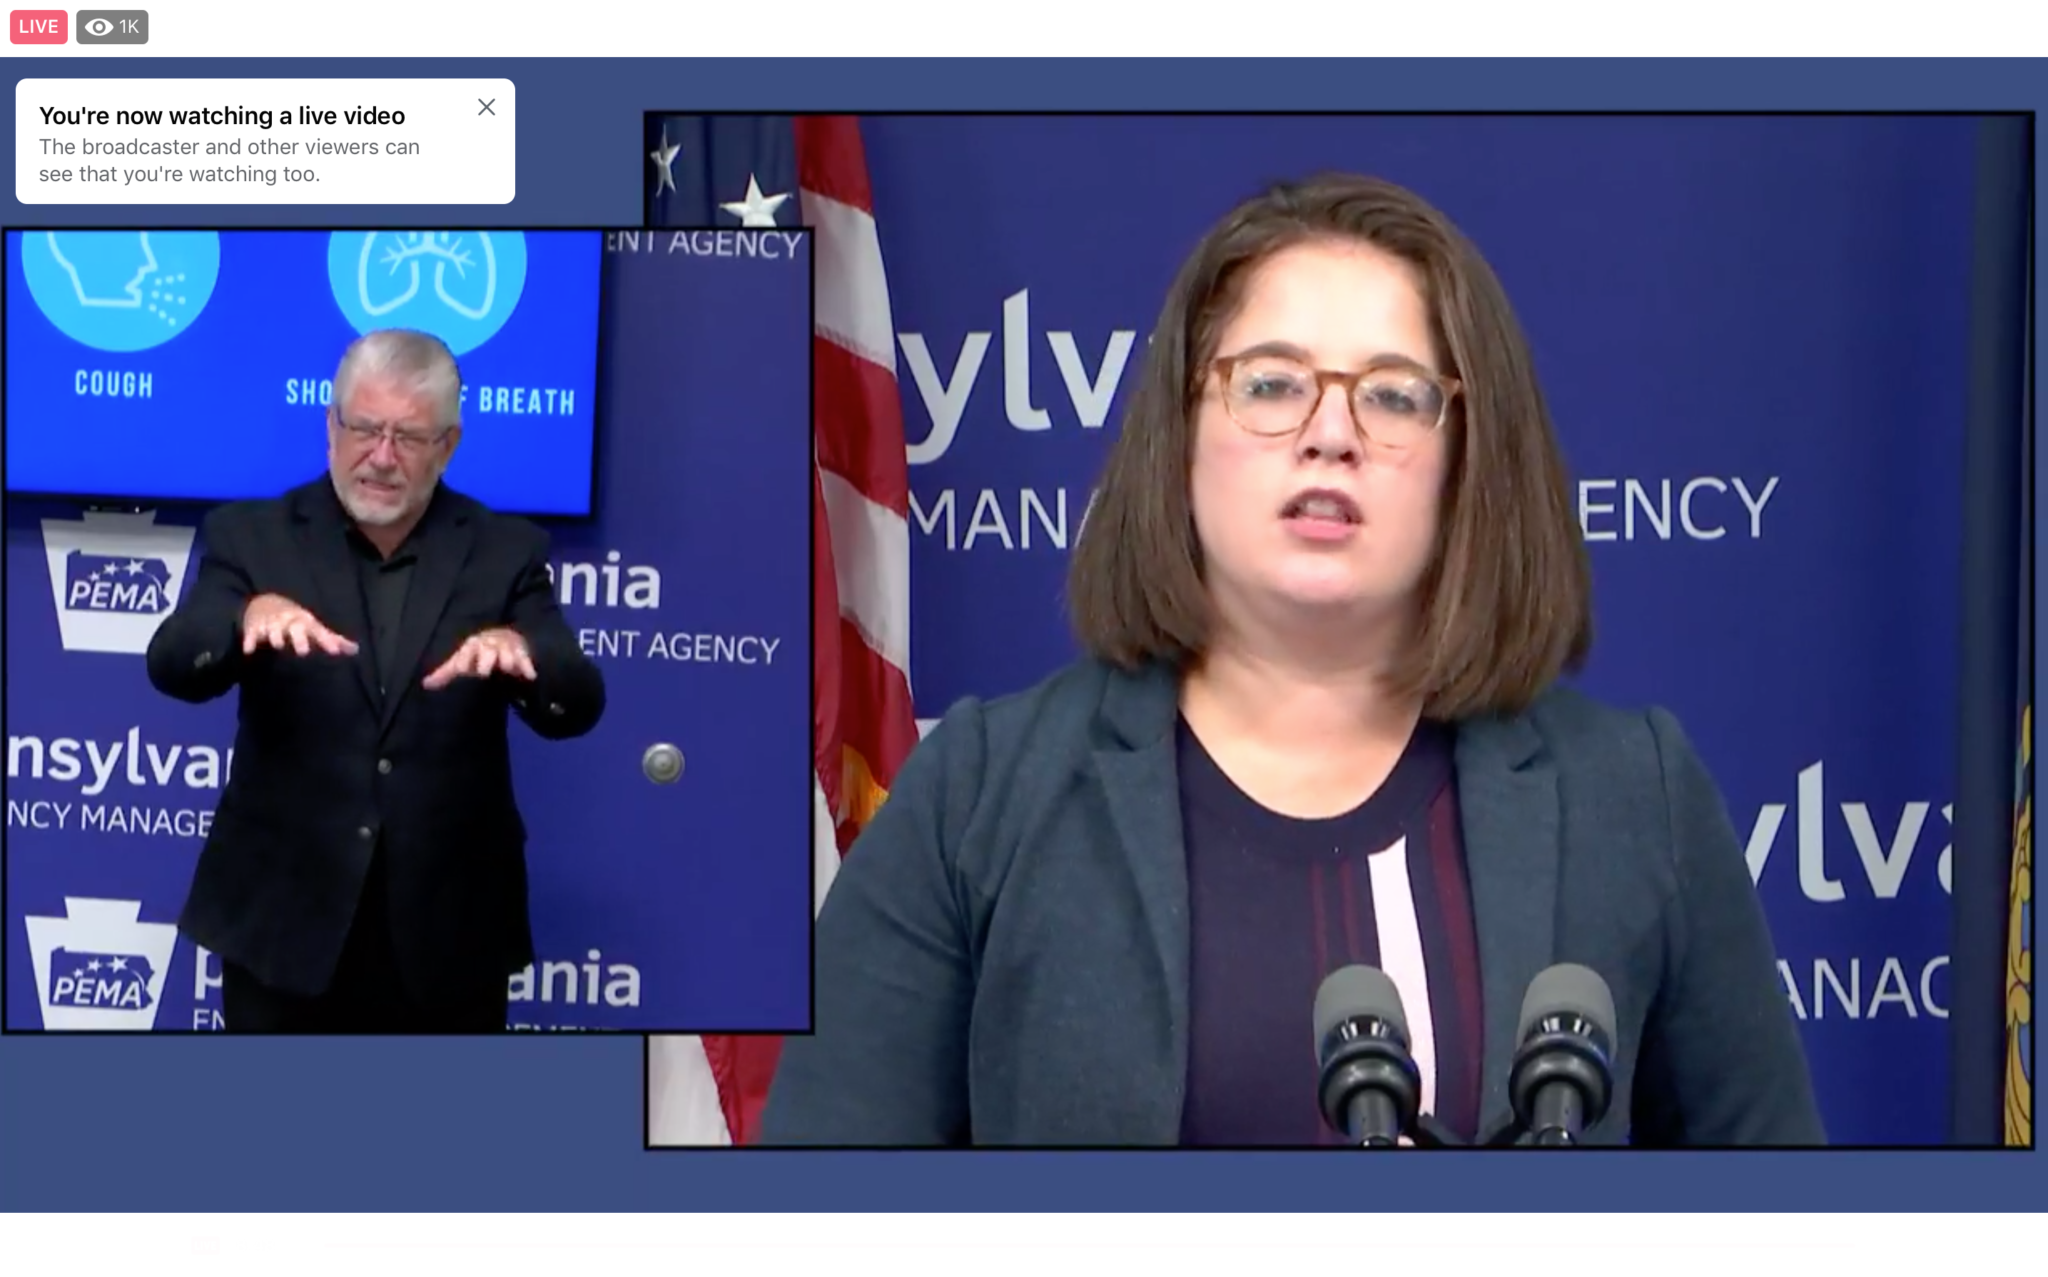 Pennsylvania Insurance Commissioner Jessica Altman talks about options for those who lose their health insurance due to the ailing economy, in a press conference on Sept. 23, 2020. (Screenshot)